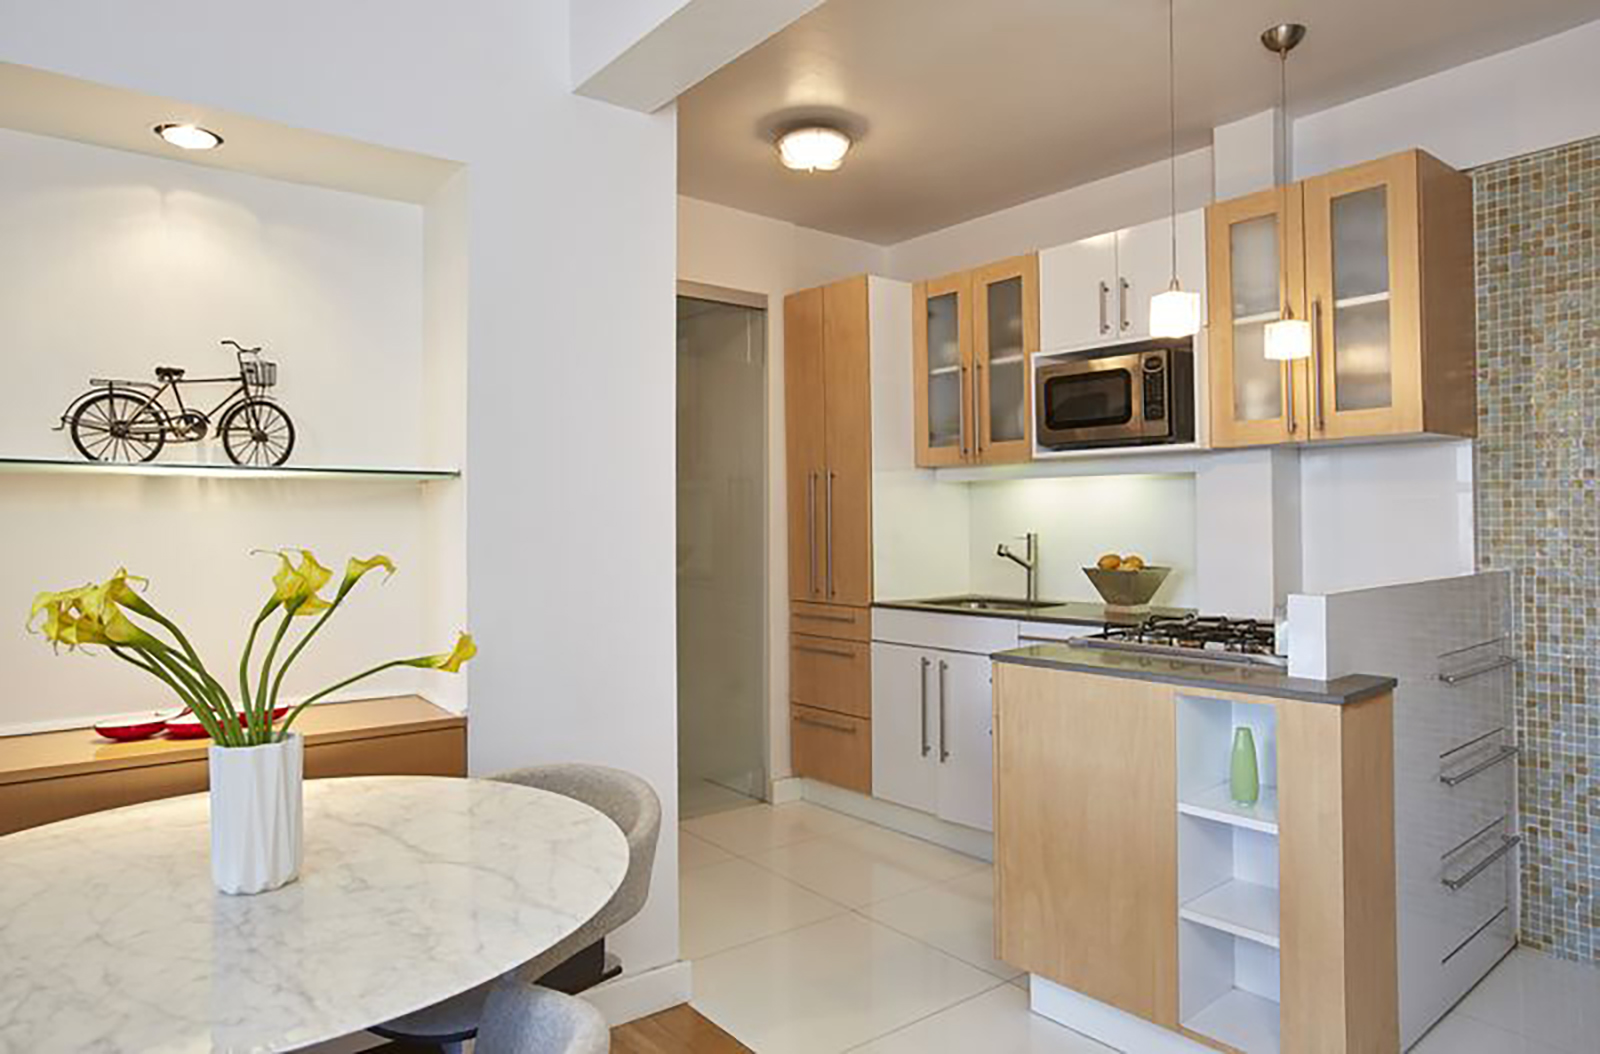 breen towers 180 west houston street nyc apartments cityrealty. Black Bedroom Furniture Sets. Home Design Ideas